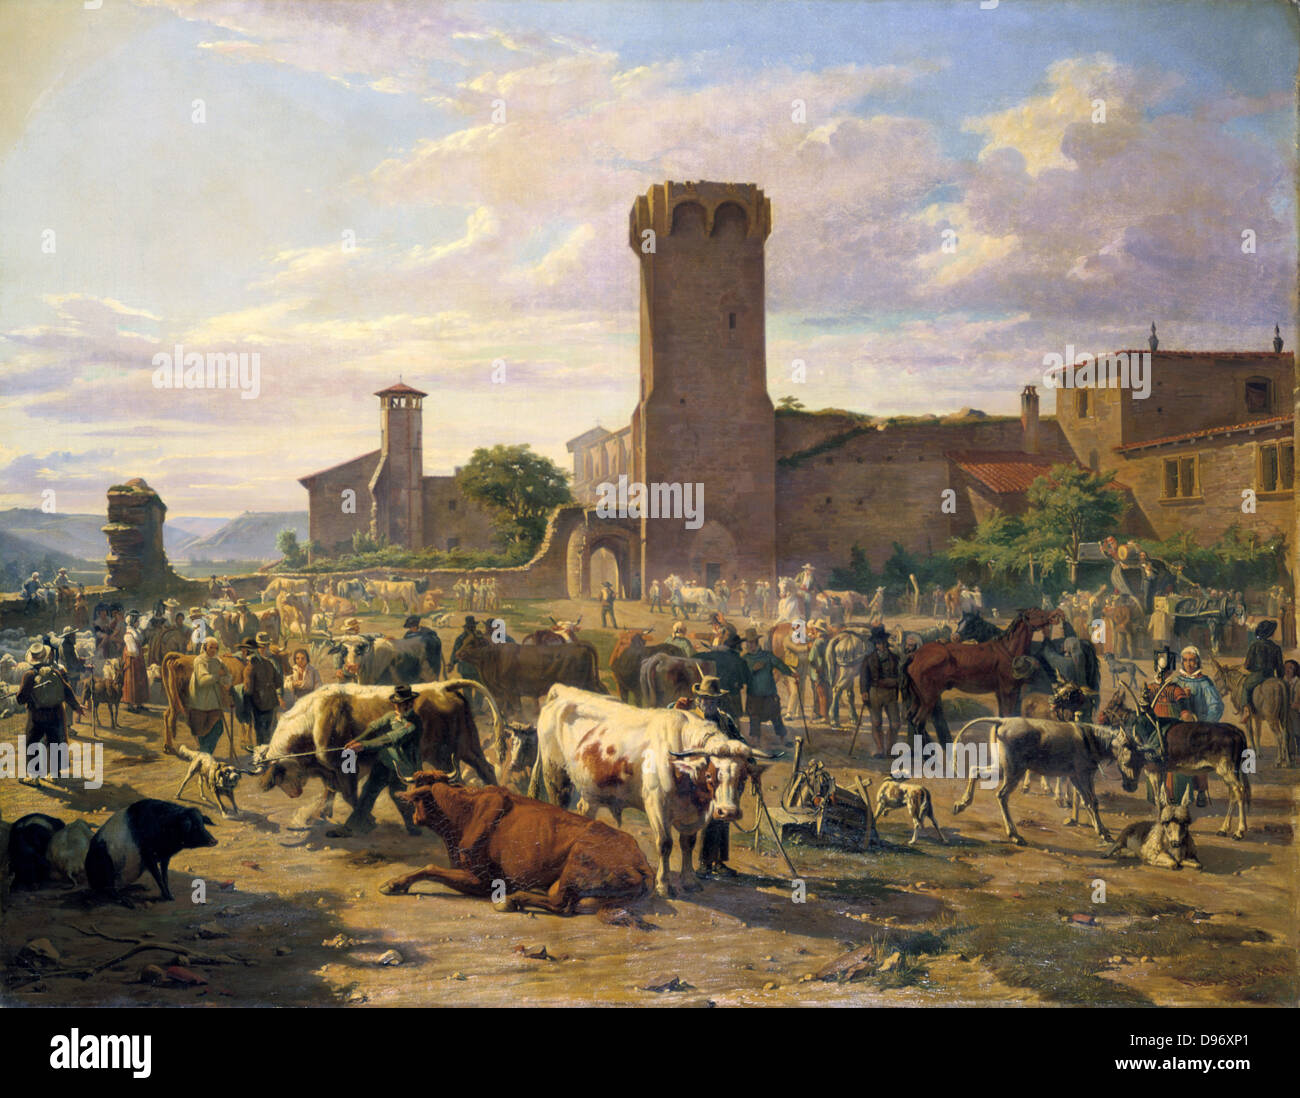 Cattle Market at Arbresie'. Louis Guy (1824-1888) French artist. Oil on Canvas. - Stock Image